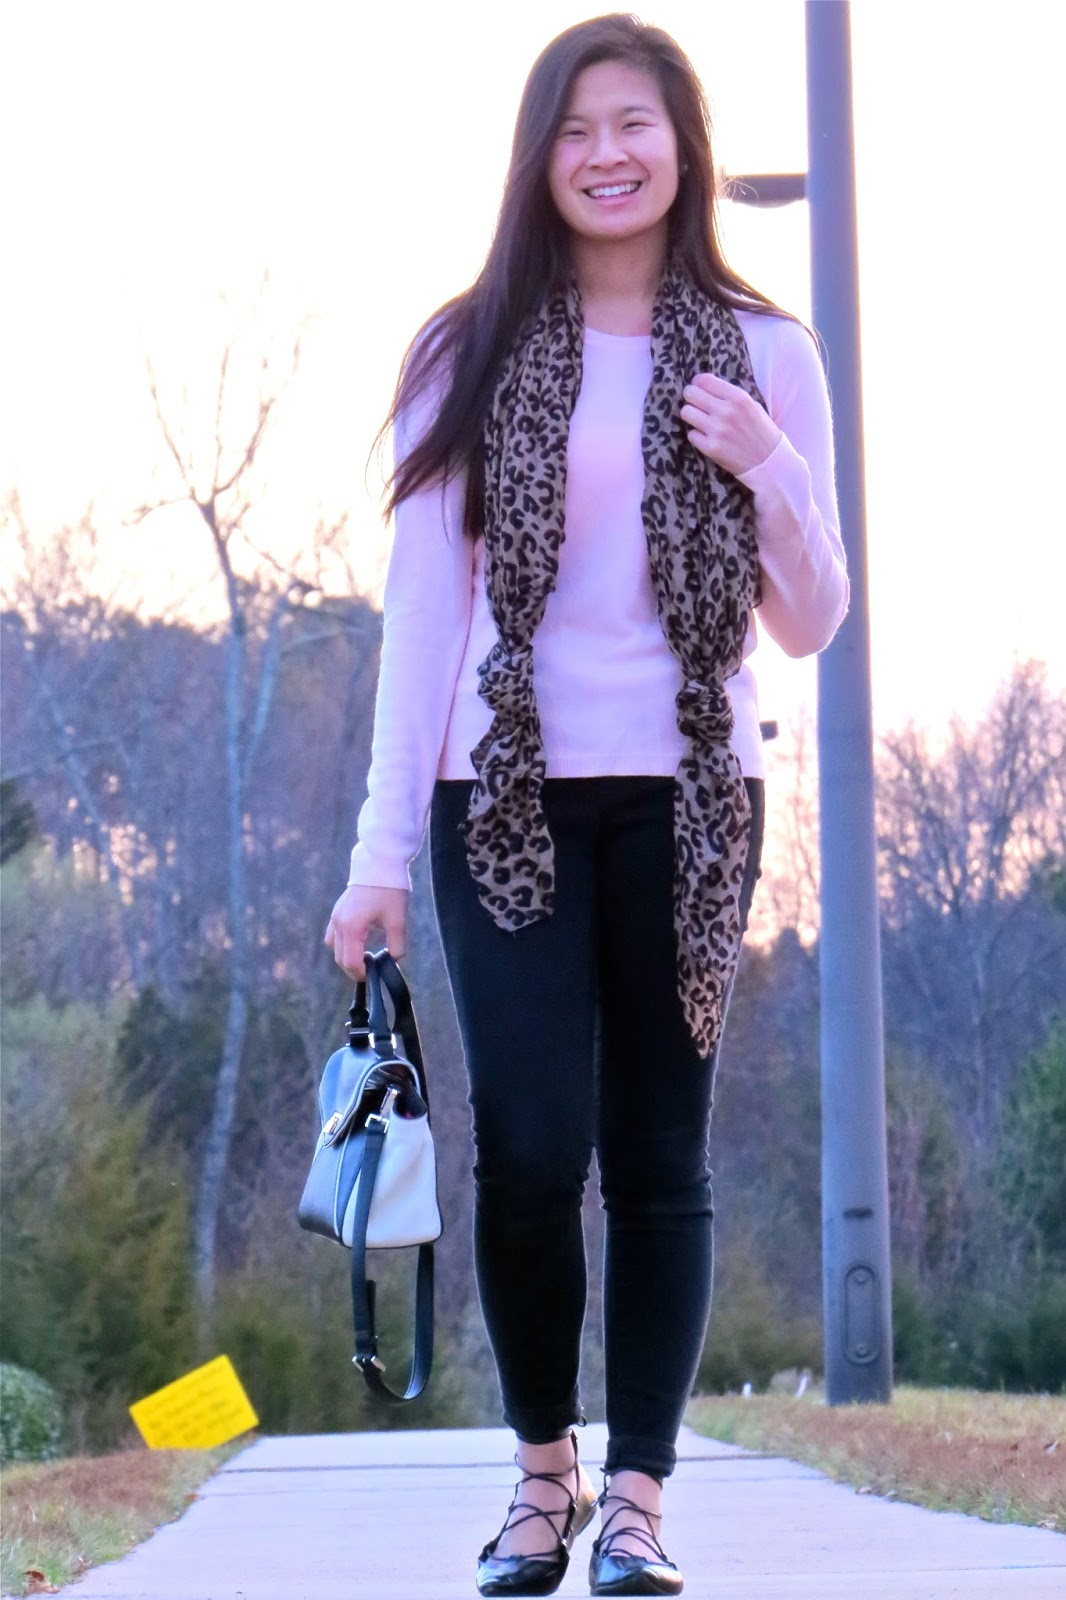 Casual_valetine's_day_outfit